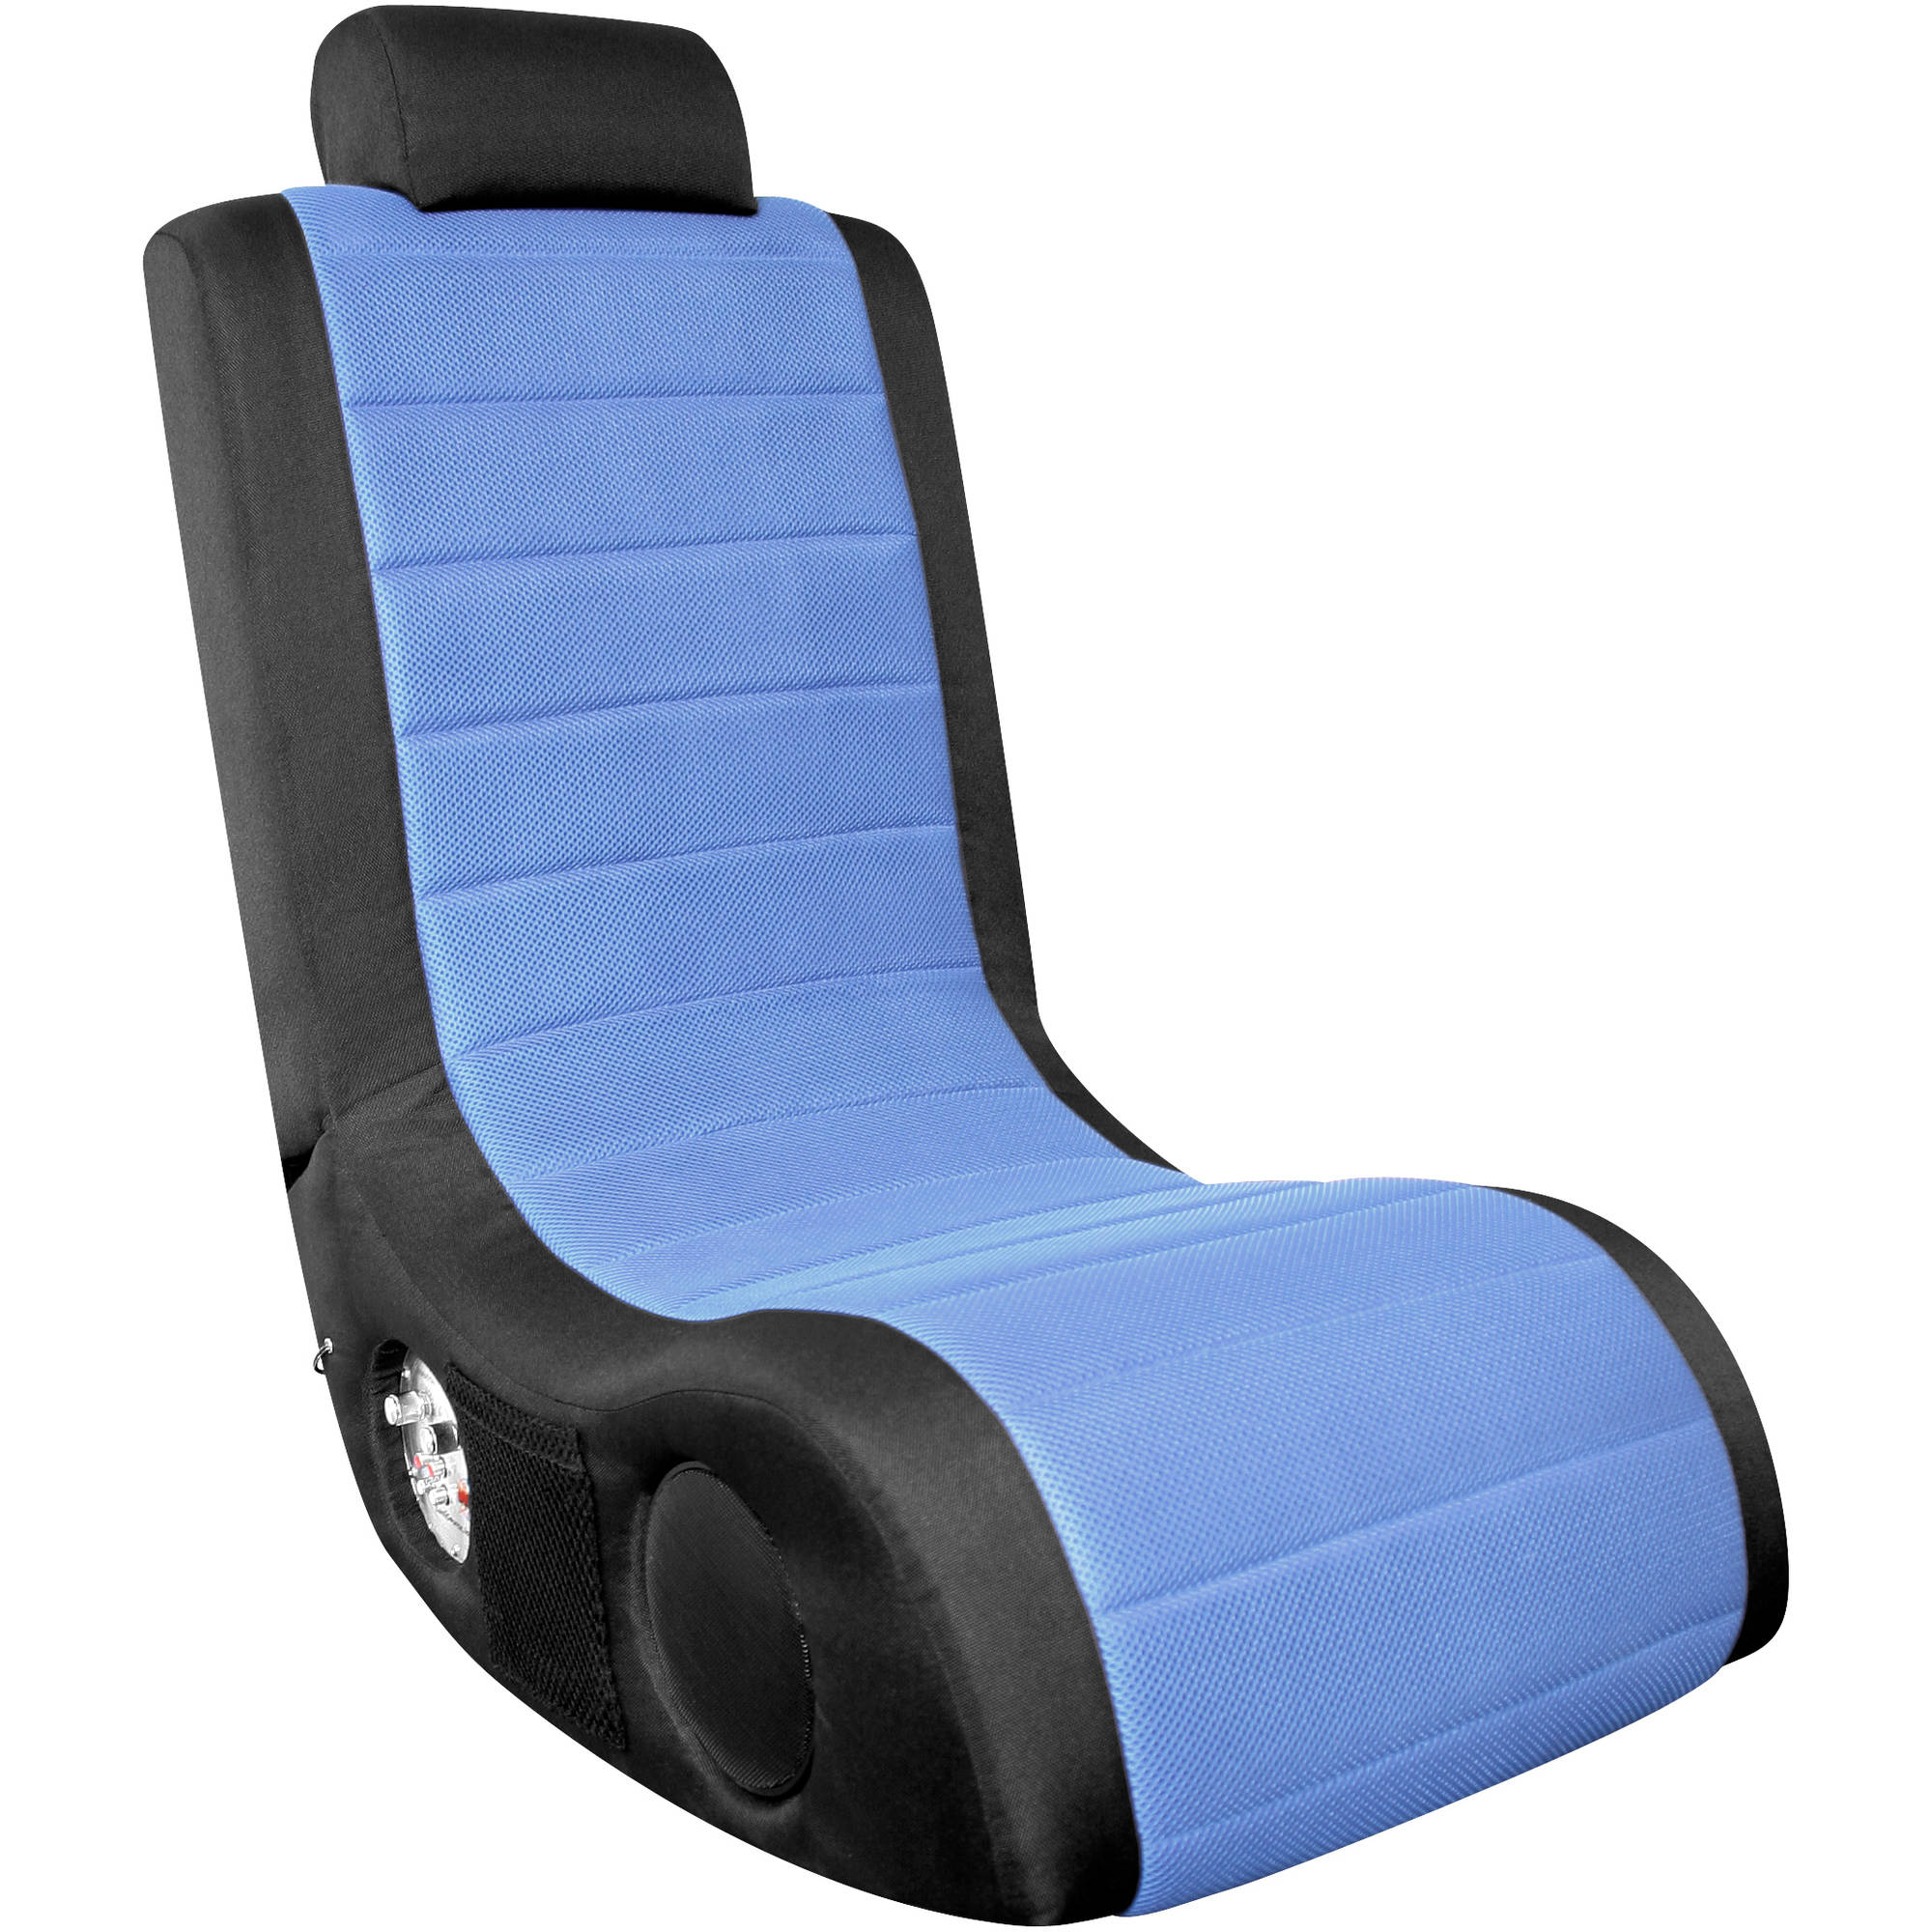 A44 BoomChair Video Rocker, Blue